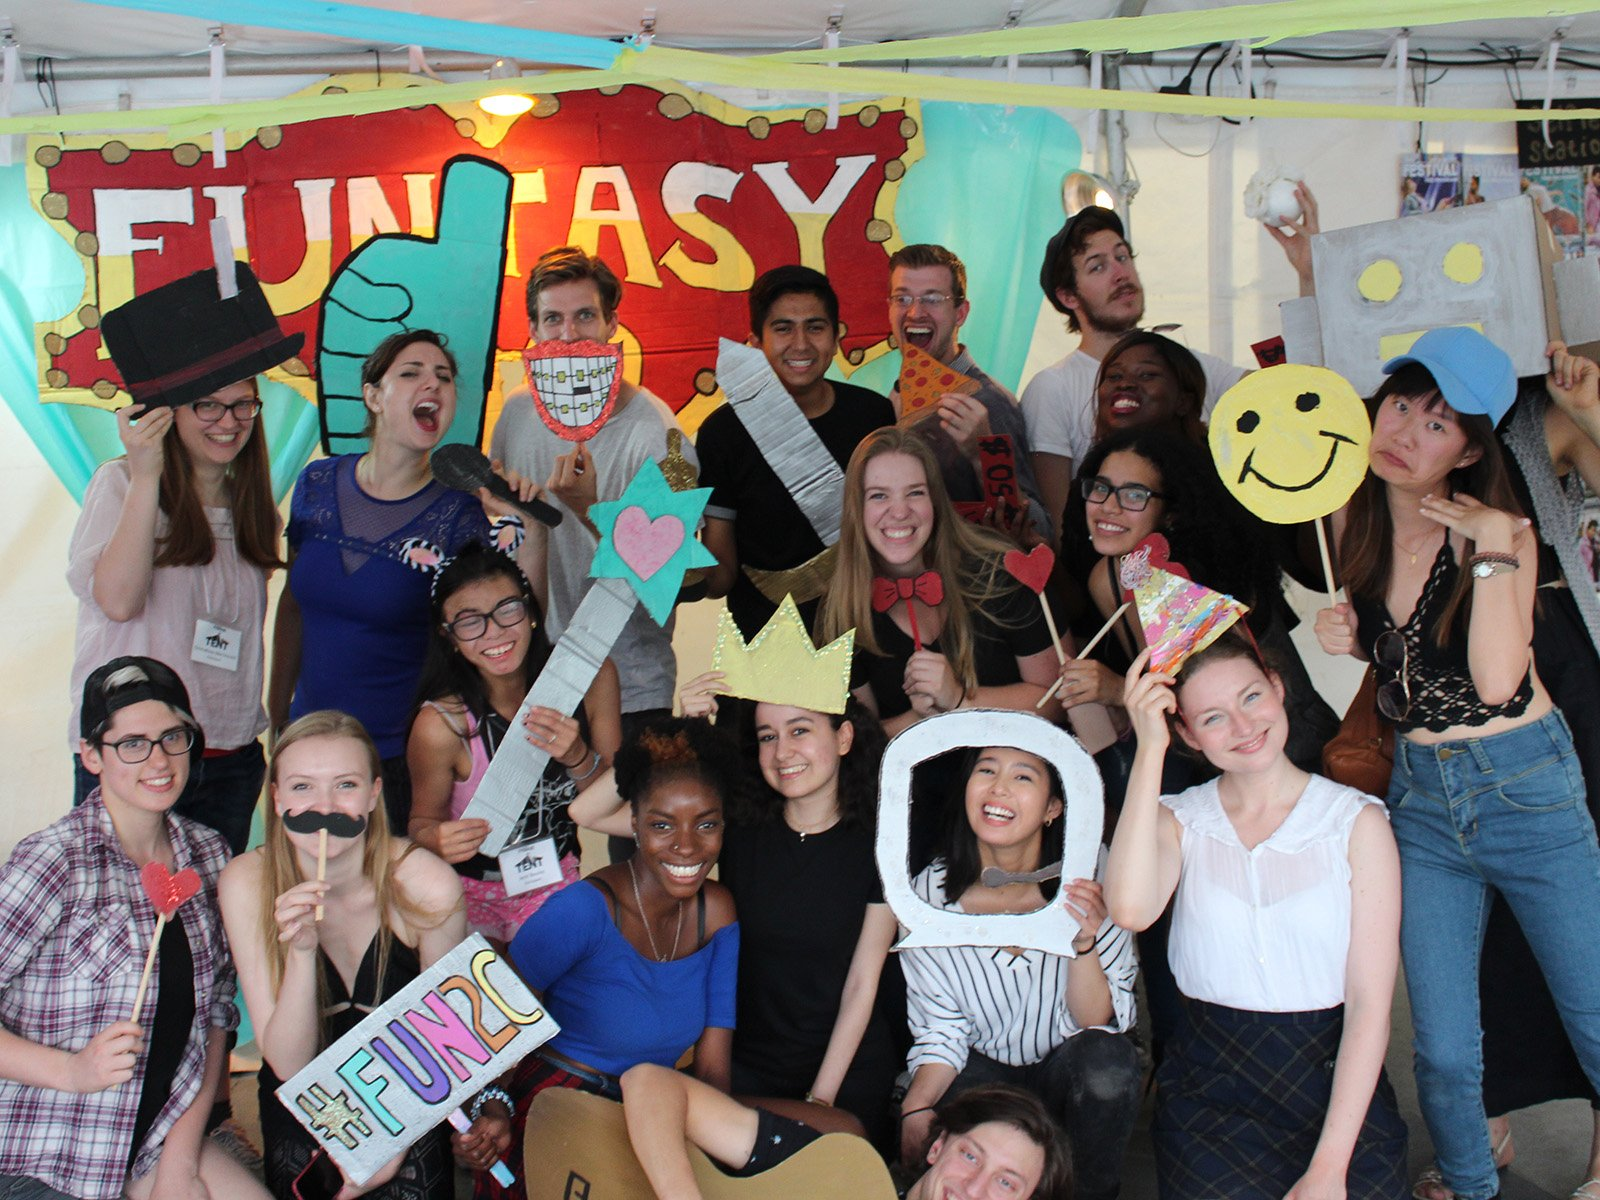 TENT Funtasy Photo Booth